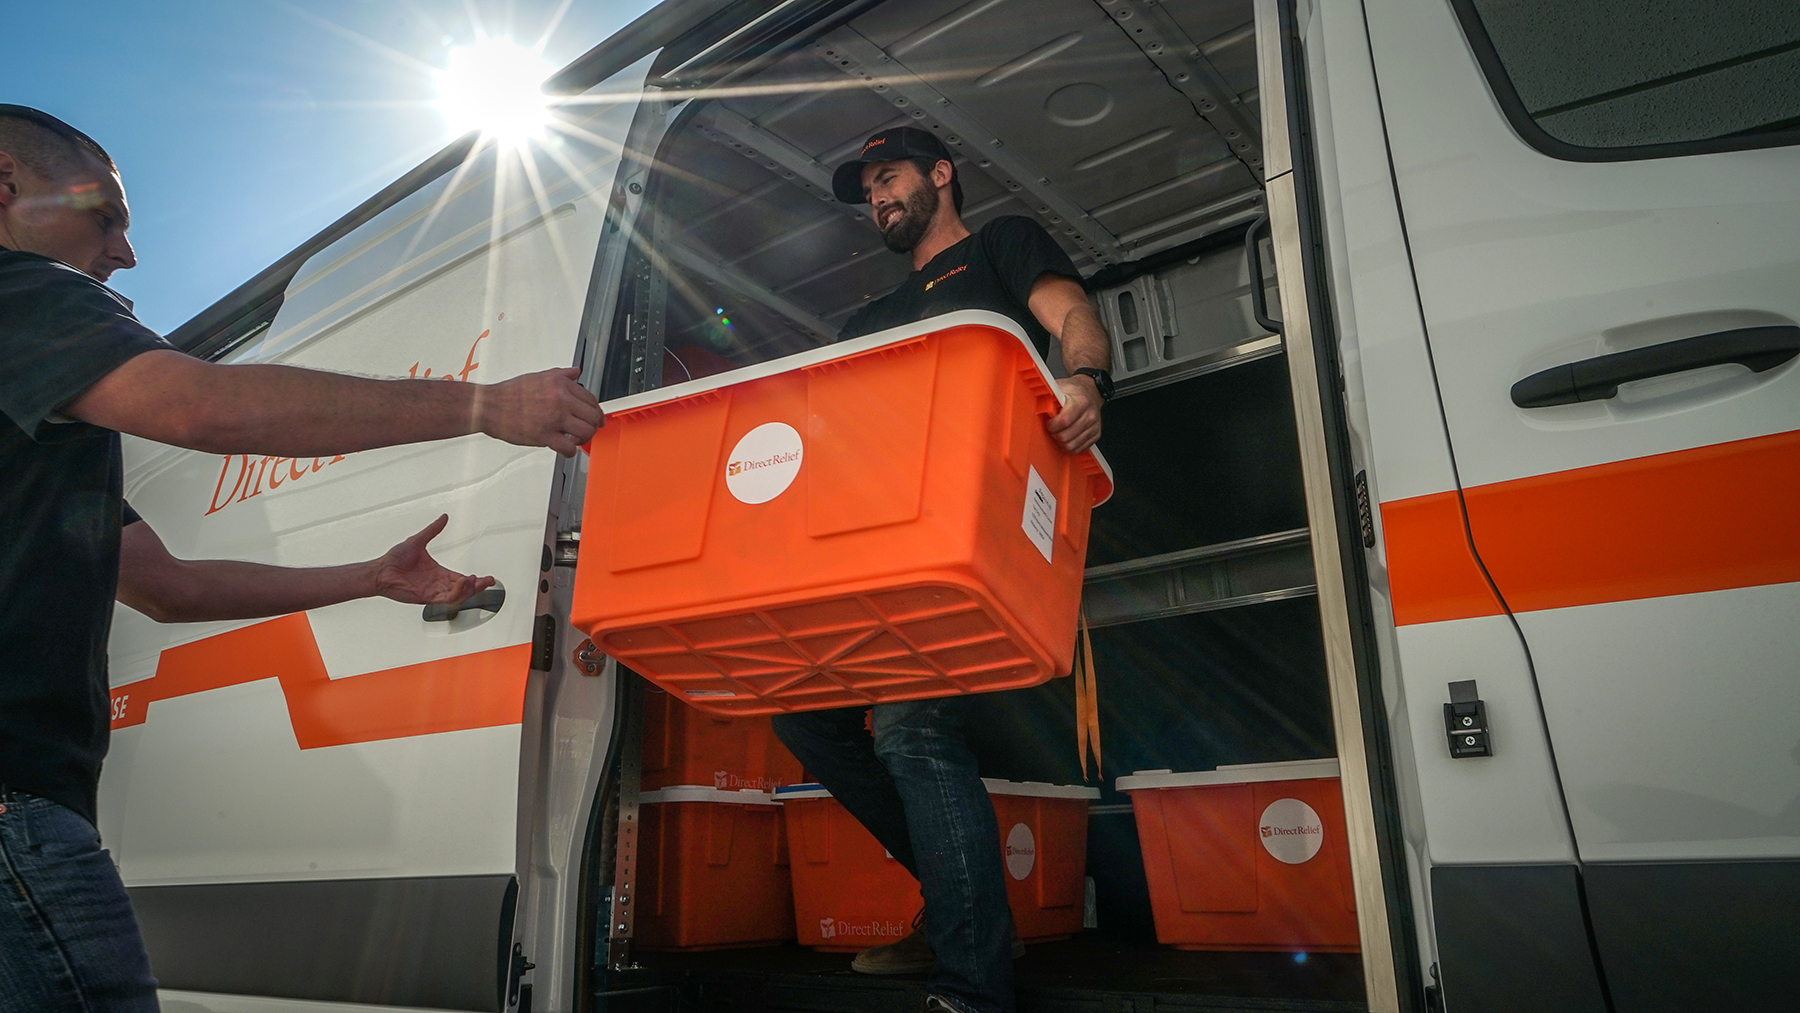 Direct Relief's emergency response team hands off medical supplies to staff at the Petaluma Health Center in response to the Kincade Fire. (Lara Cooper/Direct Relief)